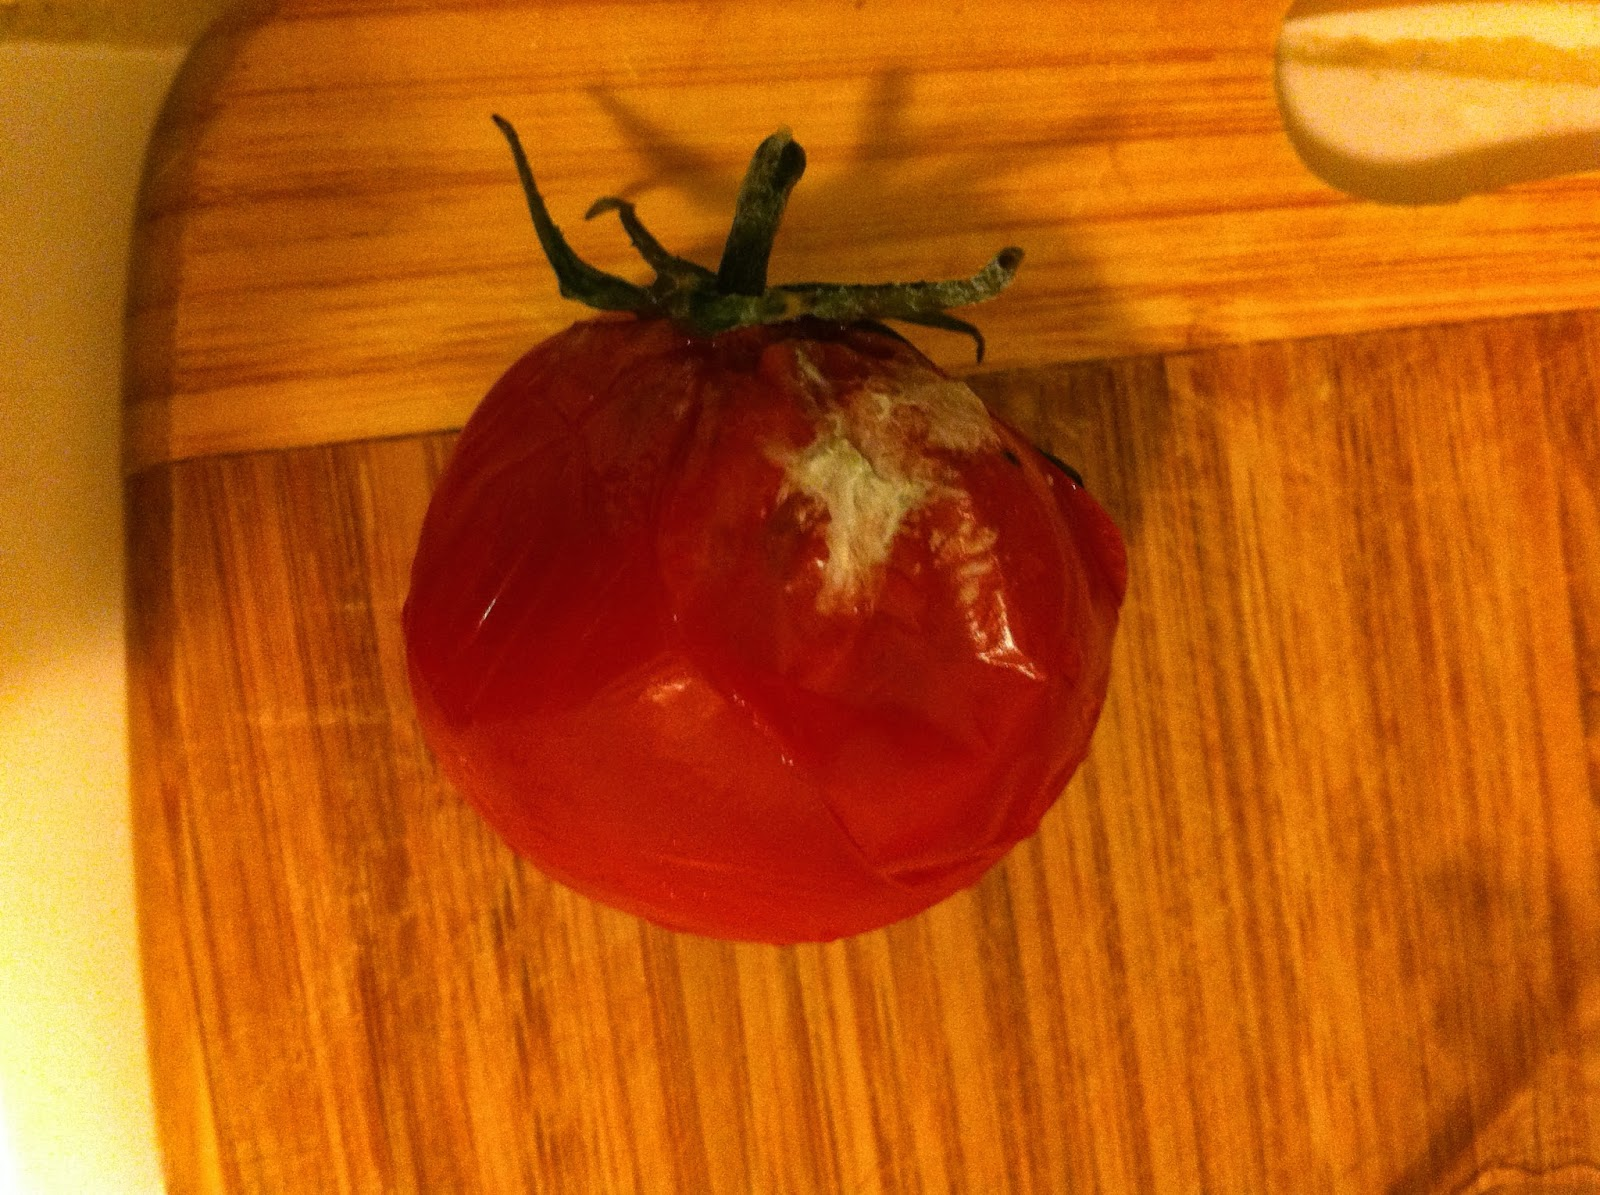 Picture of moldy tomato